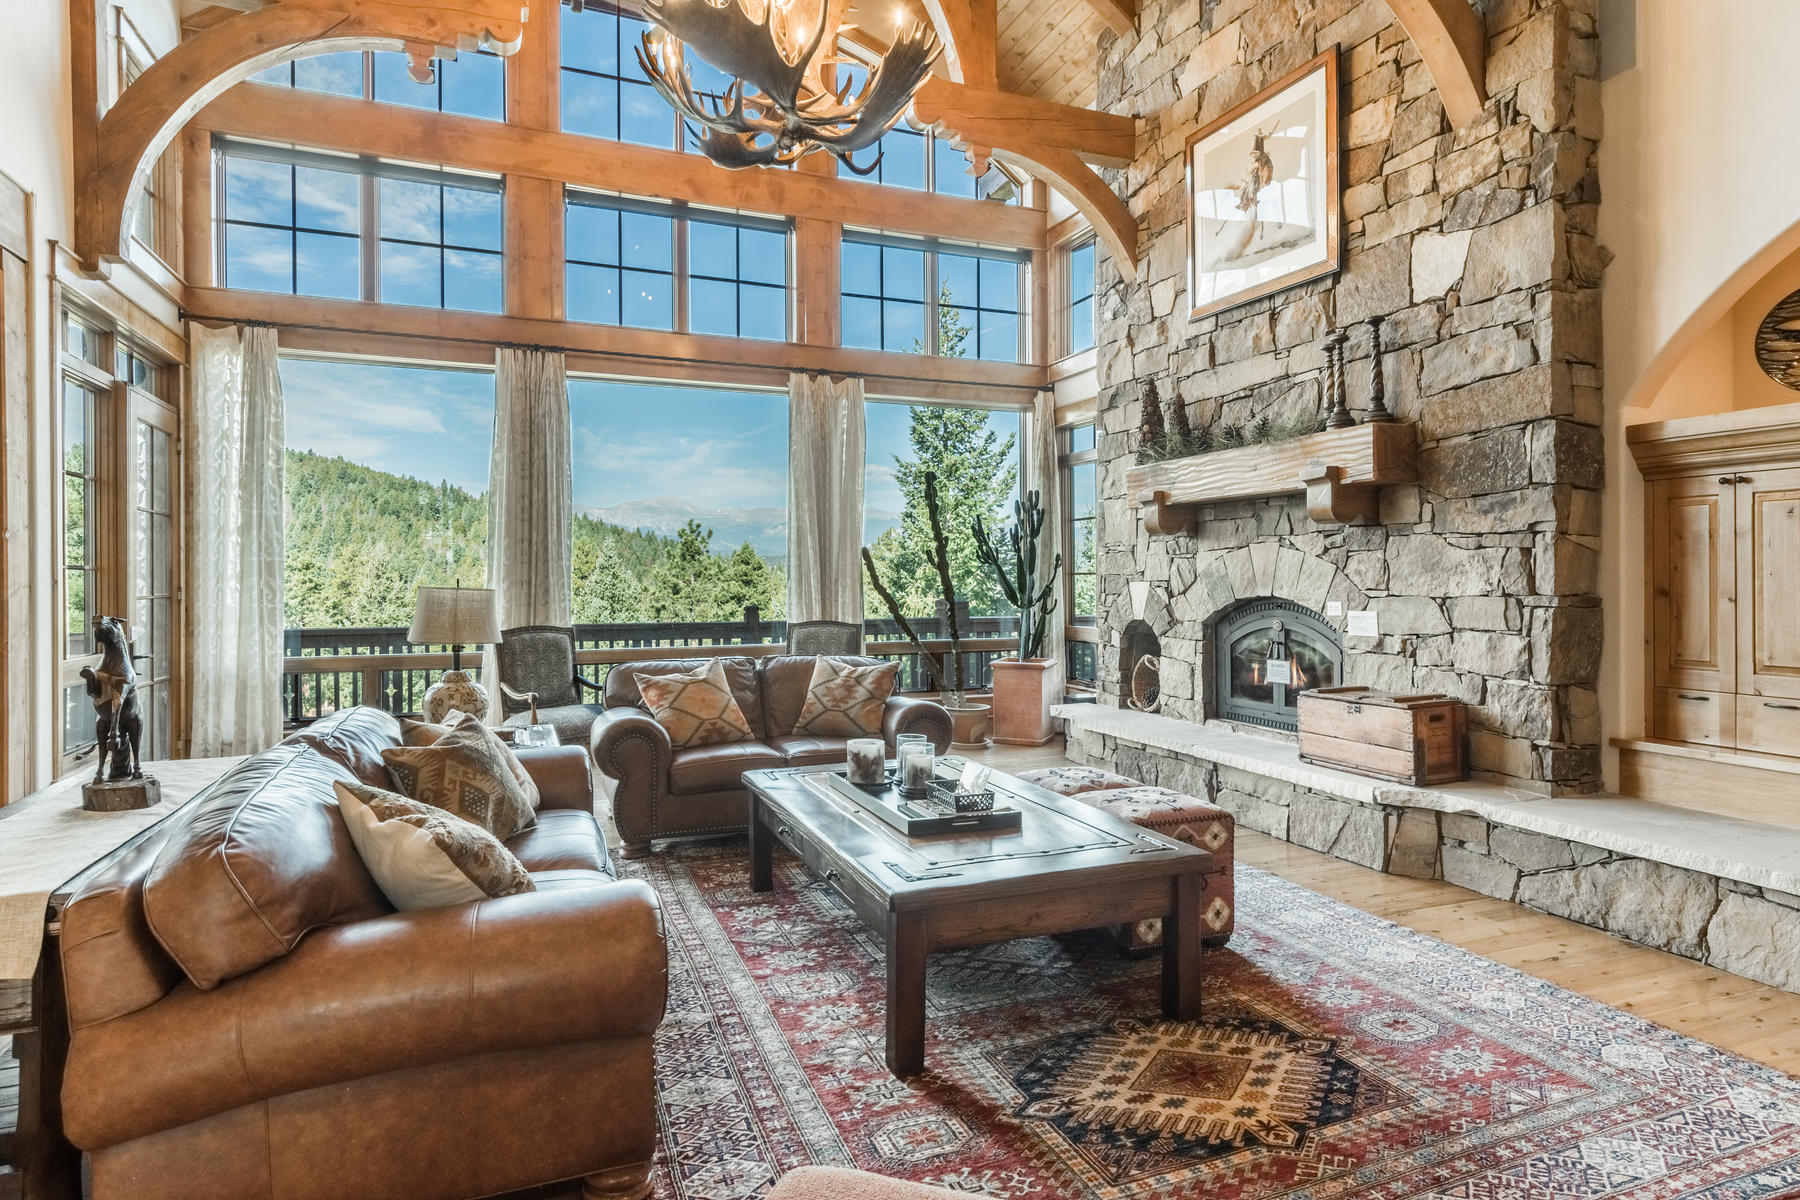 Additional photo for property listing at Aspen Meadows Ranch 35025 Buffalo Park Road Evergreen, Colorado 80439 United States